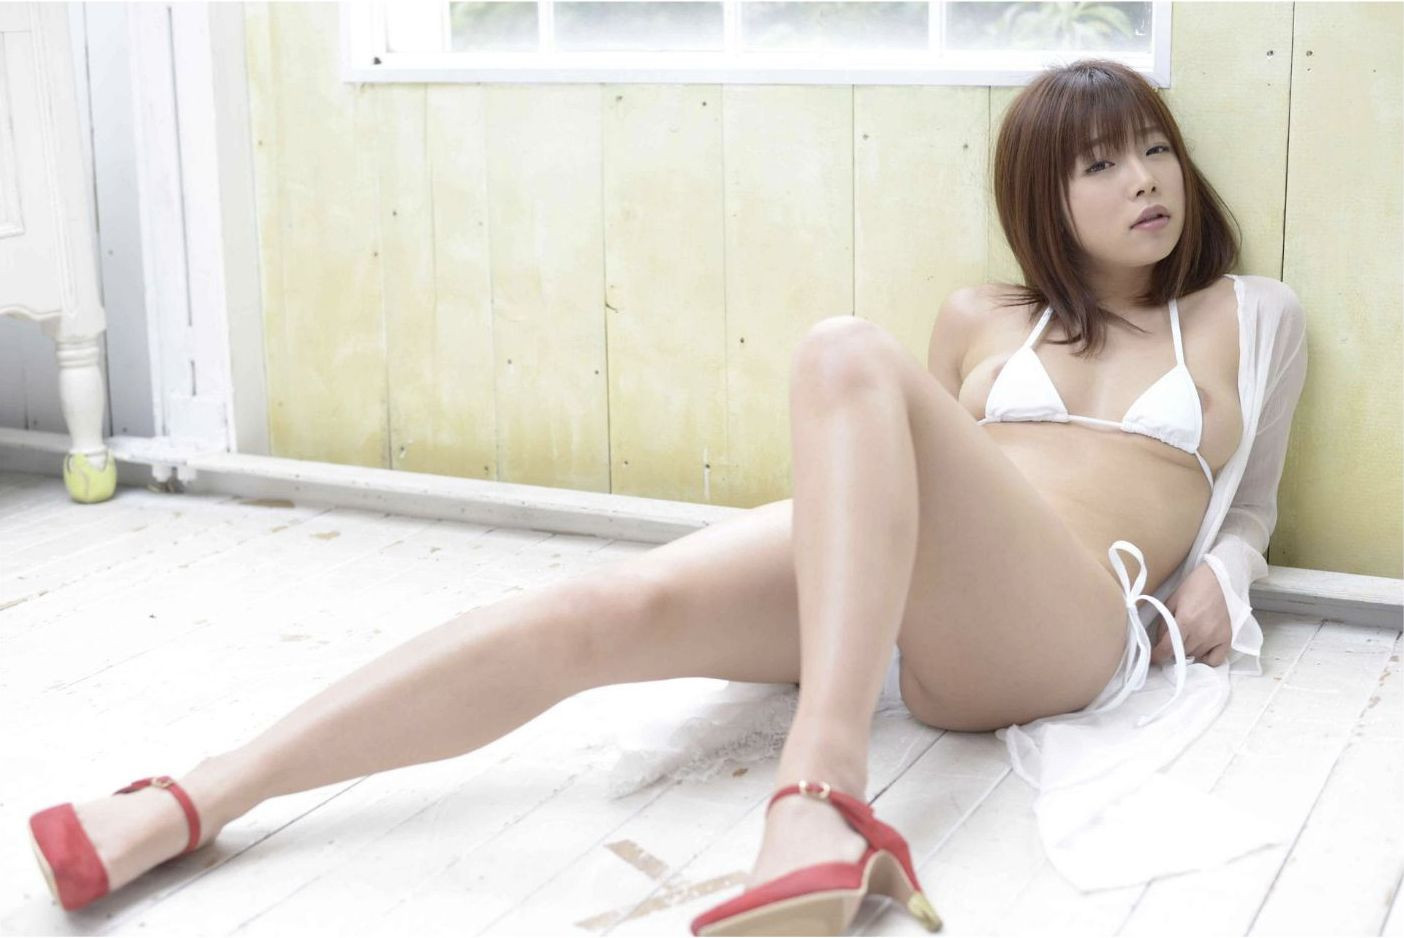 SOFT ON DEMAND GRAVURE COLLECTION 紗倉まな02 photo 045